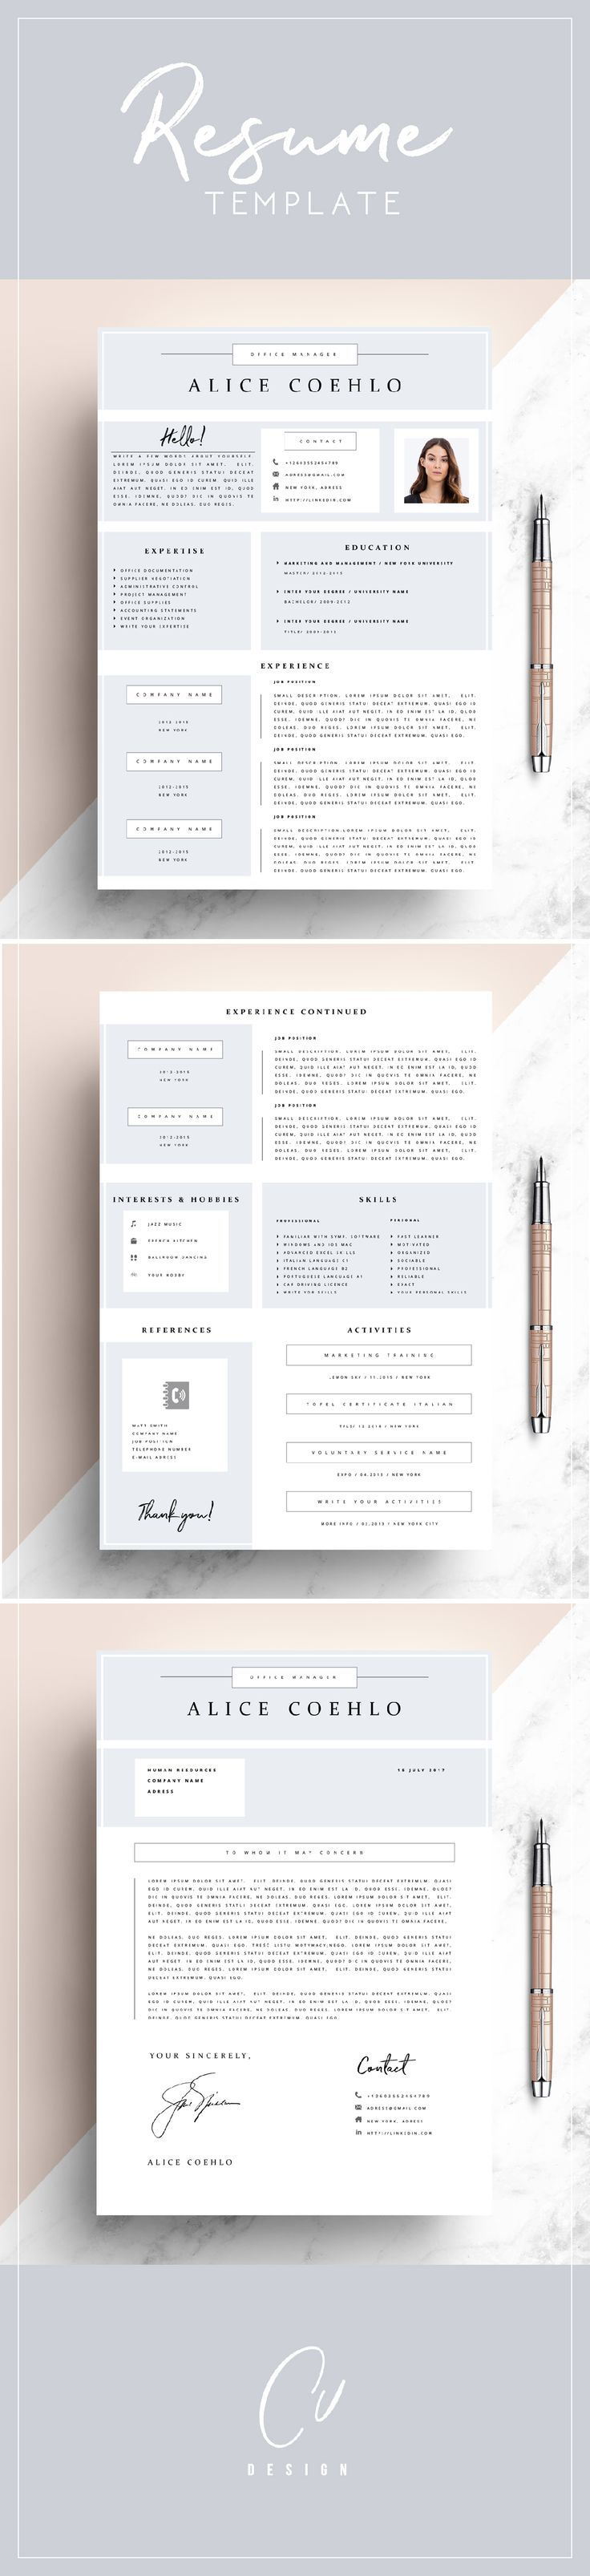 Check out this amazing MS Word editable resume template! ♥️